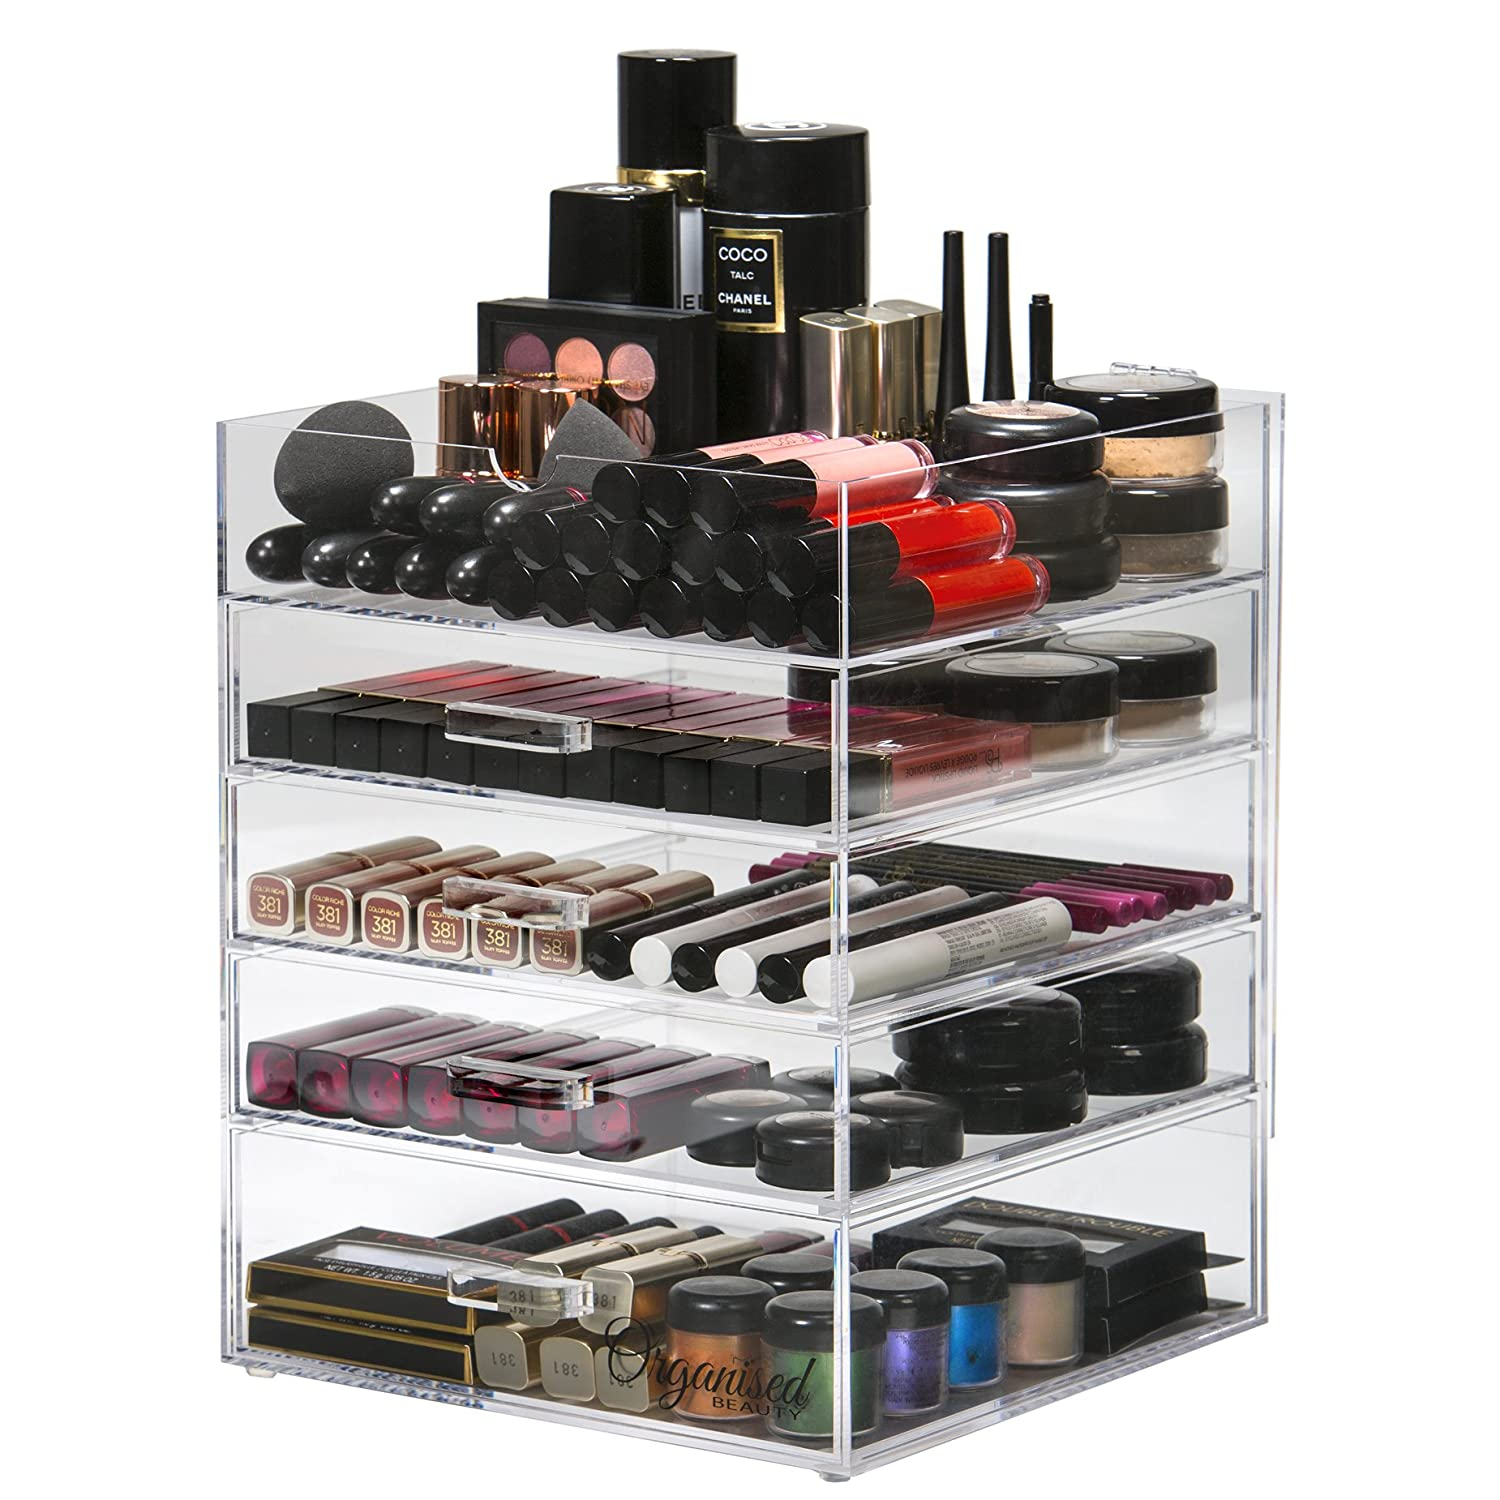 5 Tier Acrylic Makeup Storage Organiser Clear | Cosmetic Organiser 4 Drawer Storage | Flip Top Lid | By Organised Beauty